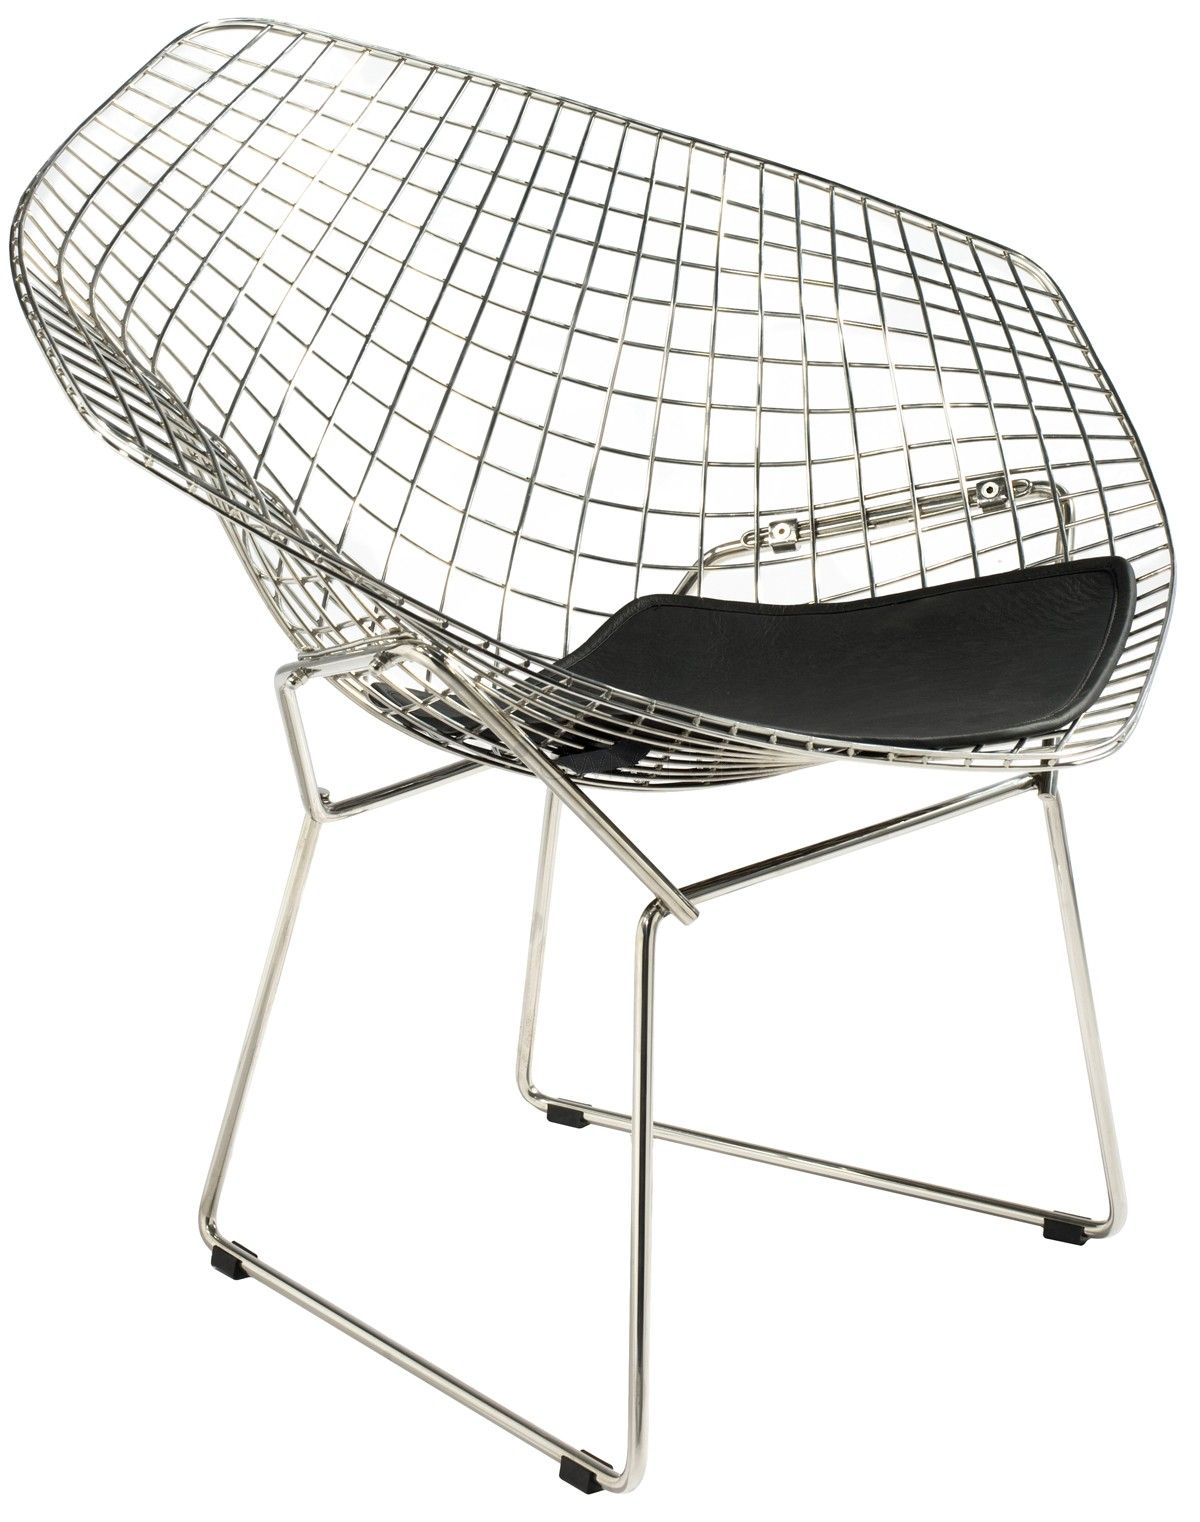 Bertoia diamond chair vintage - Distinctive Design From 1952 Sculptural Wire Rod Frame Black Italian Leather Seat Can Be Used Outside Innovative And Elegant The Bertoia Diamond Chair Is A